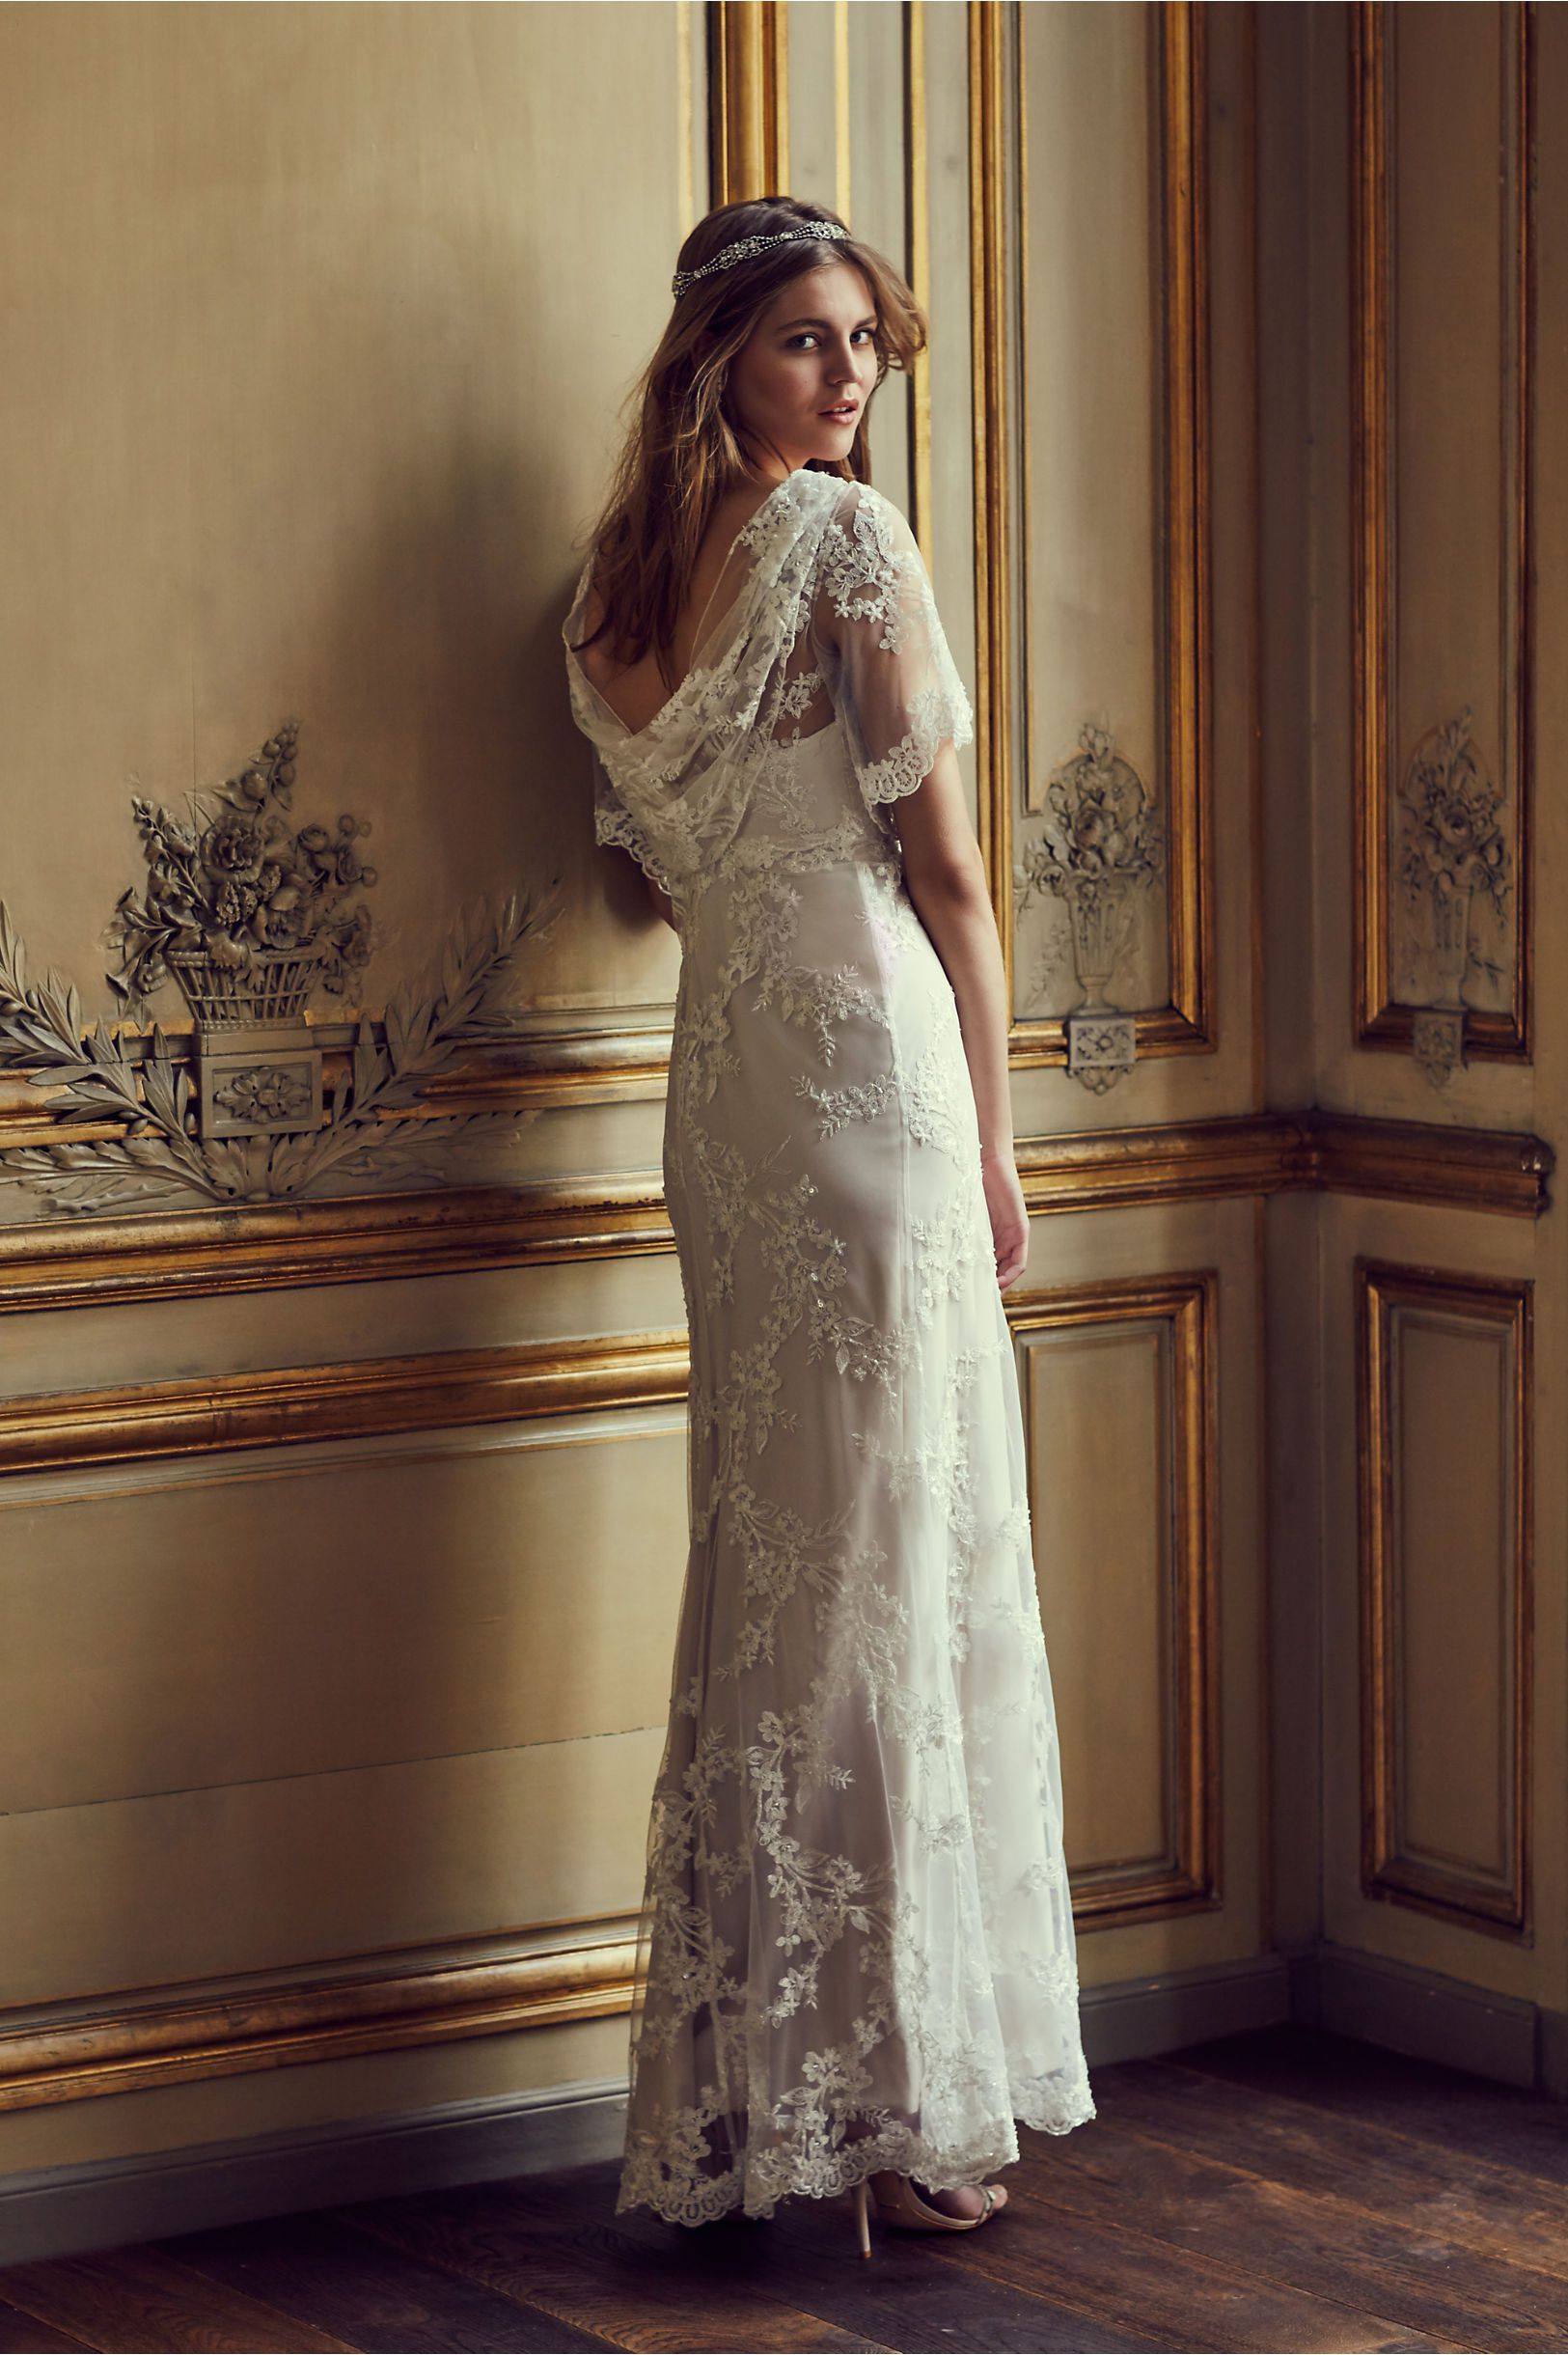 4 Surprising Stores That Sell Wedding Dresses